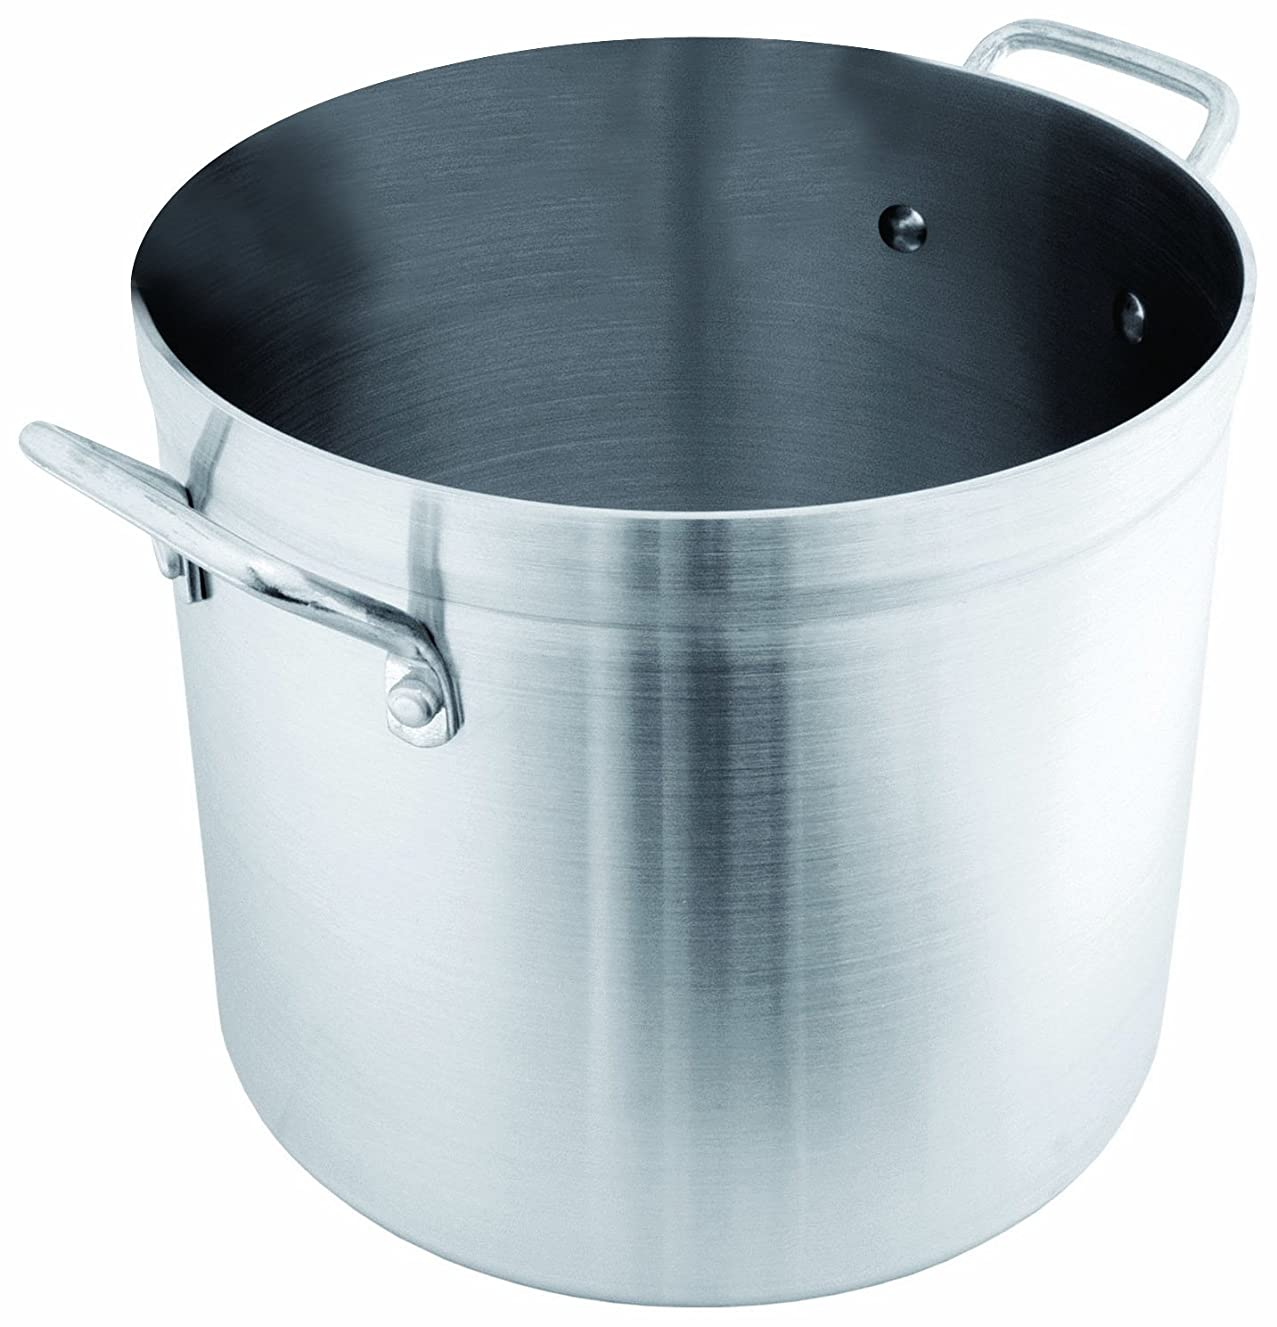 Crestware POT24 24-Quart Aluminum Stock Pot